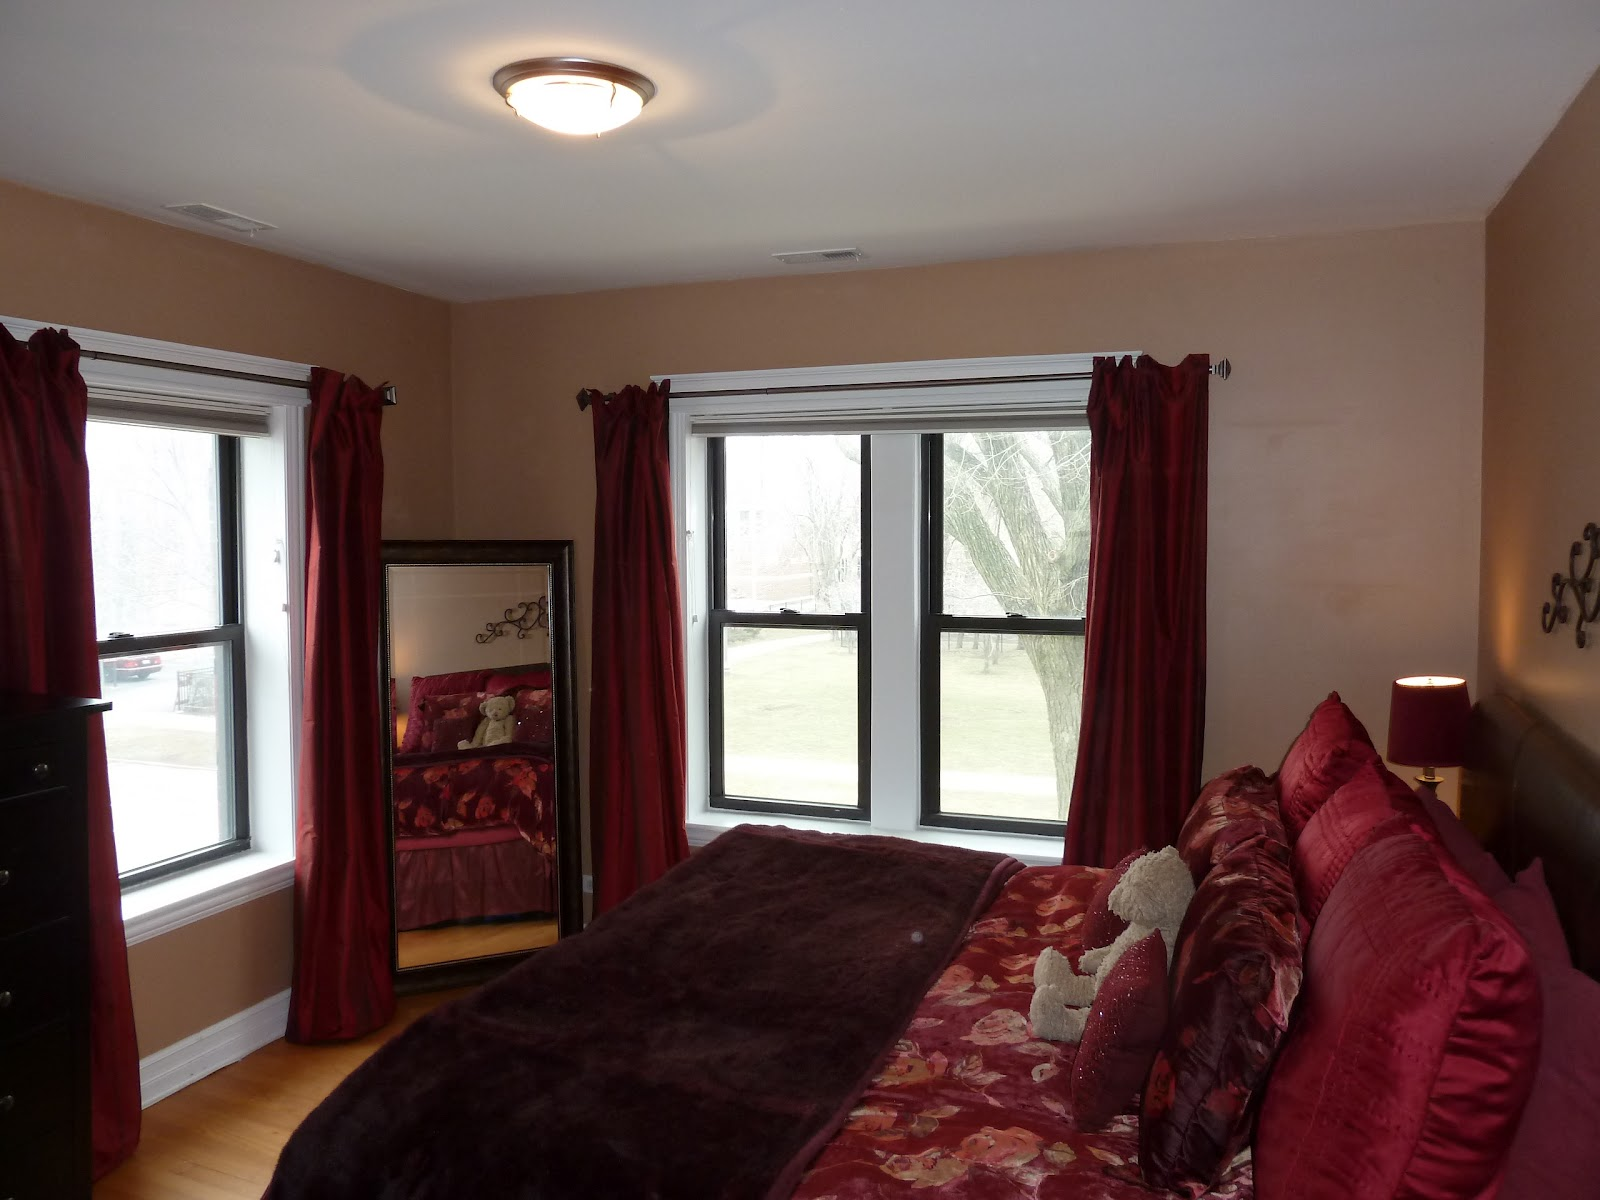 The Chicago Real Estate Local New For Sale Gorgeous Two Bedrooms Ravenswood Condo 150 000